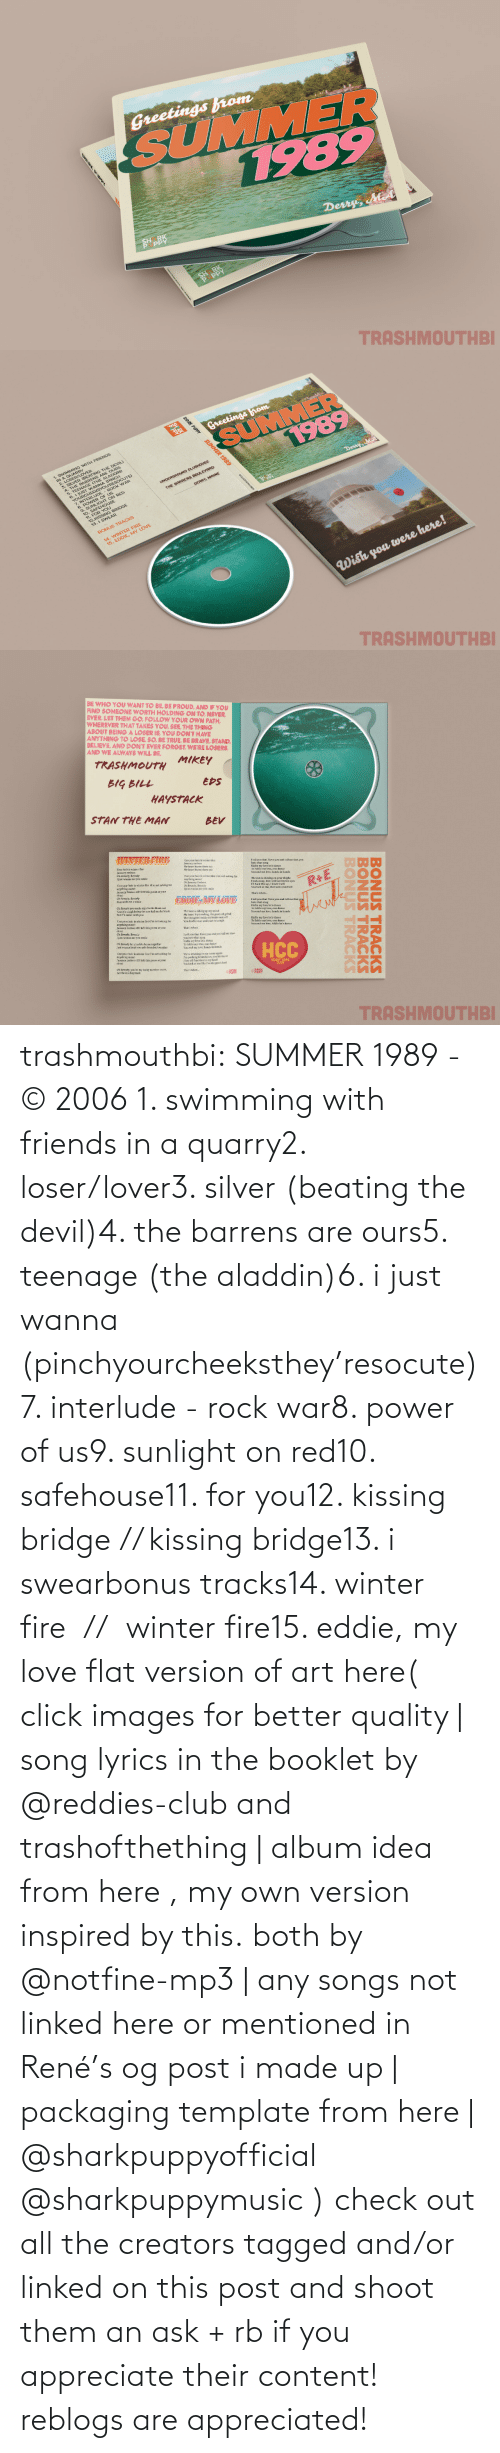 Timeline: trashmouthbi: SUMMER 1989 - © 2006 1. swimming with friends in a quarry2. loser/lover3. silver (beating the devil)4. the barrens are ours5. teenage (the aladdin)6. i just wanna (pinchyourcheeksthey'resocute)7. interlude - rock war8. power of us9. sunlight on red10. safehouse11. for you12. kissing bridge // kissing bridge13. i swearbonus tracks14. winter fire  //  winter fire15. eddie, my love flat version of art here( click images for better quality | song lyrics in the booklet by @reddies-club​ and trashofthething | album idea from here , my own version inspired by this. both by @notfine-mp3​ | any songs not linked here or mentioned in René's og post i made up | packaging template from here | @sharkpuppyofficial​ @sharkpuppymusic​ ) check out all the creators tagged and/or linked on this post and shoot them an ask + rb if you appreciate their content! reblogs are appreciated!